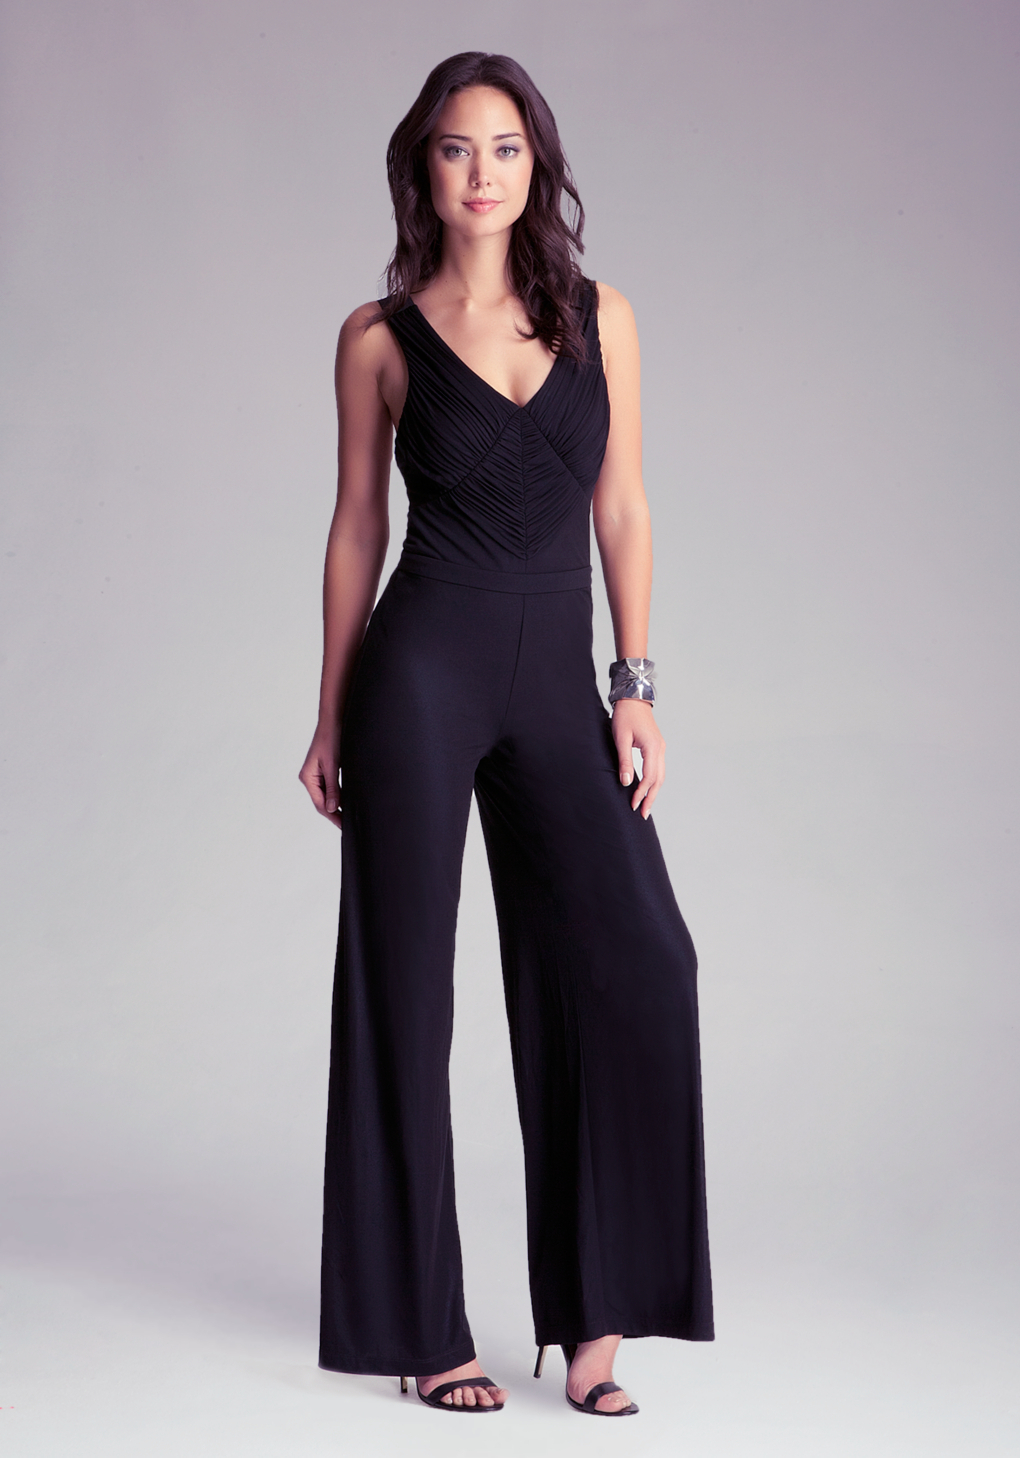 lyst bebe petite wide leg jumpsuit in black. Black Bedroom Furniture Sets. Home Design Ideas